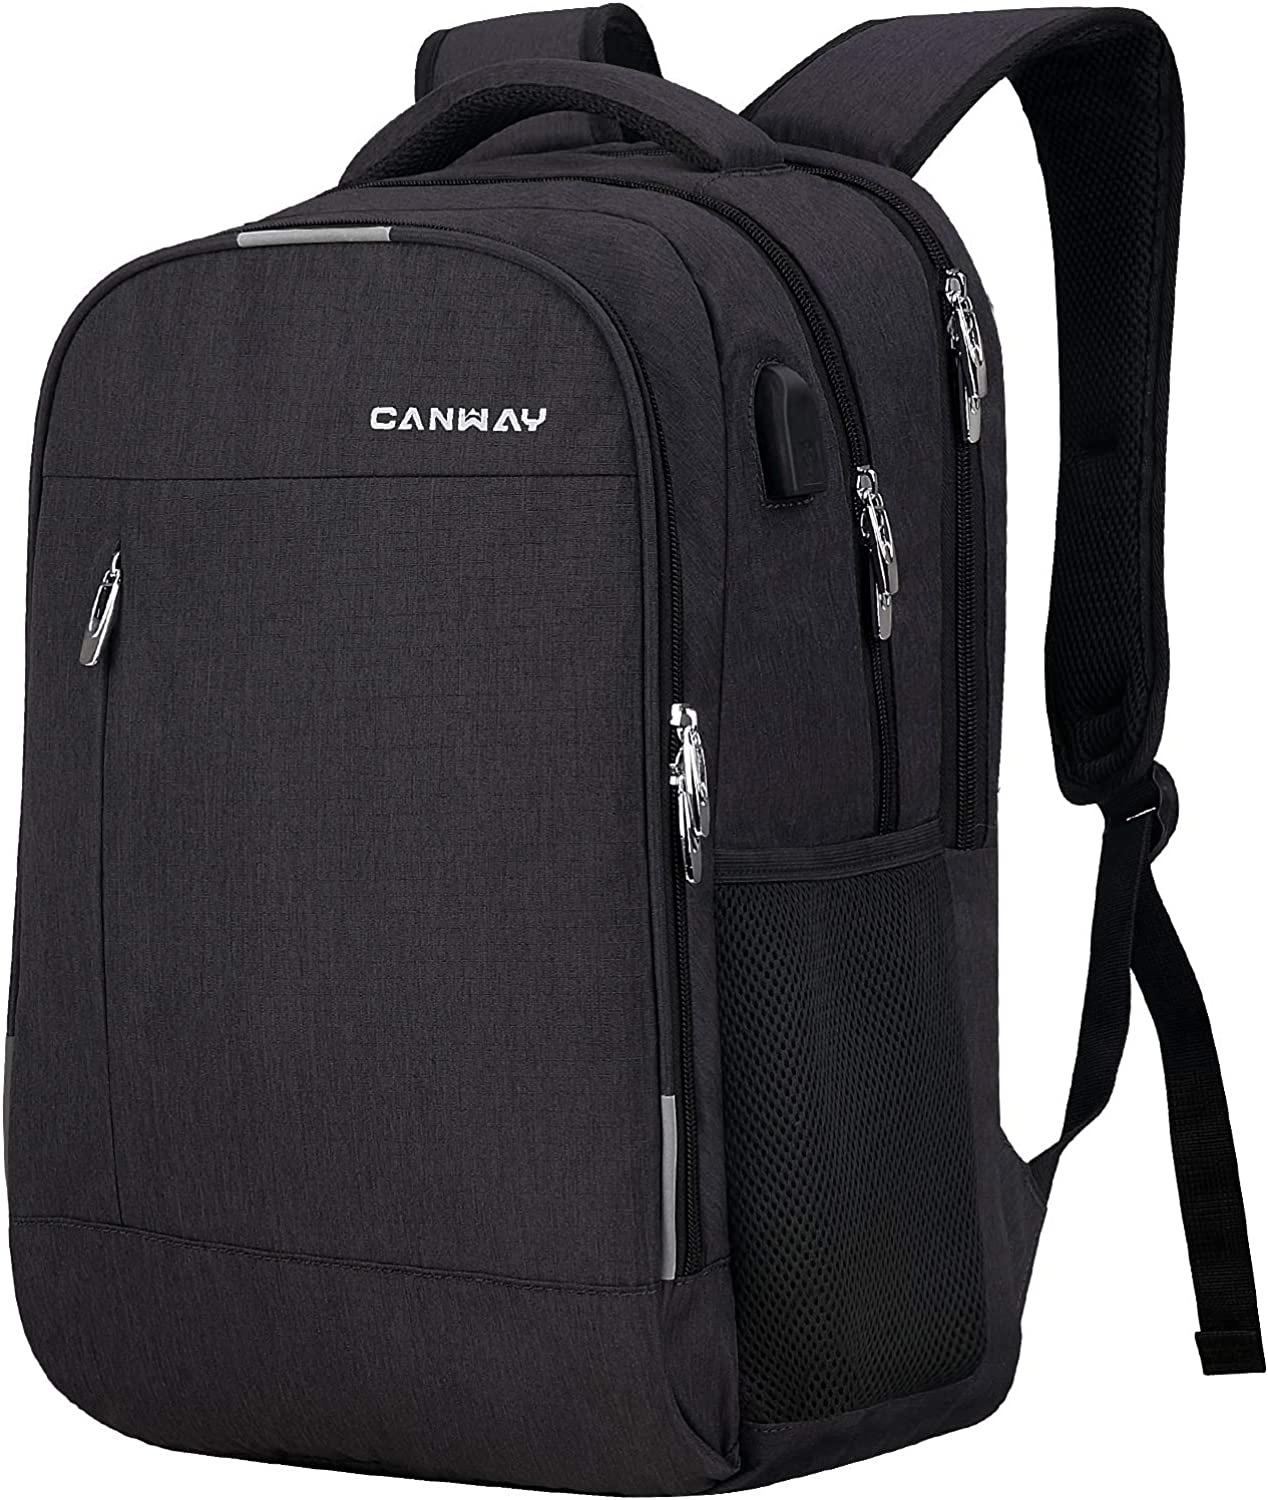 CANWAY Travel Laptop Backpack for Women/Men 15.6-Inch College School Backpack with Laptop Compartment and USB Charging Port, Anti Theft & Water Resistant Travel Business Backpack/Computer Bag - Black